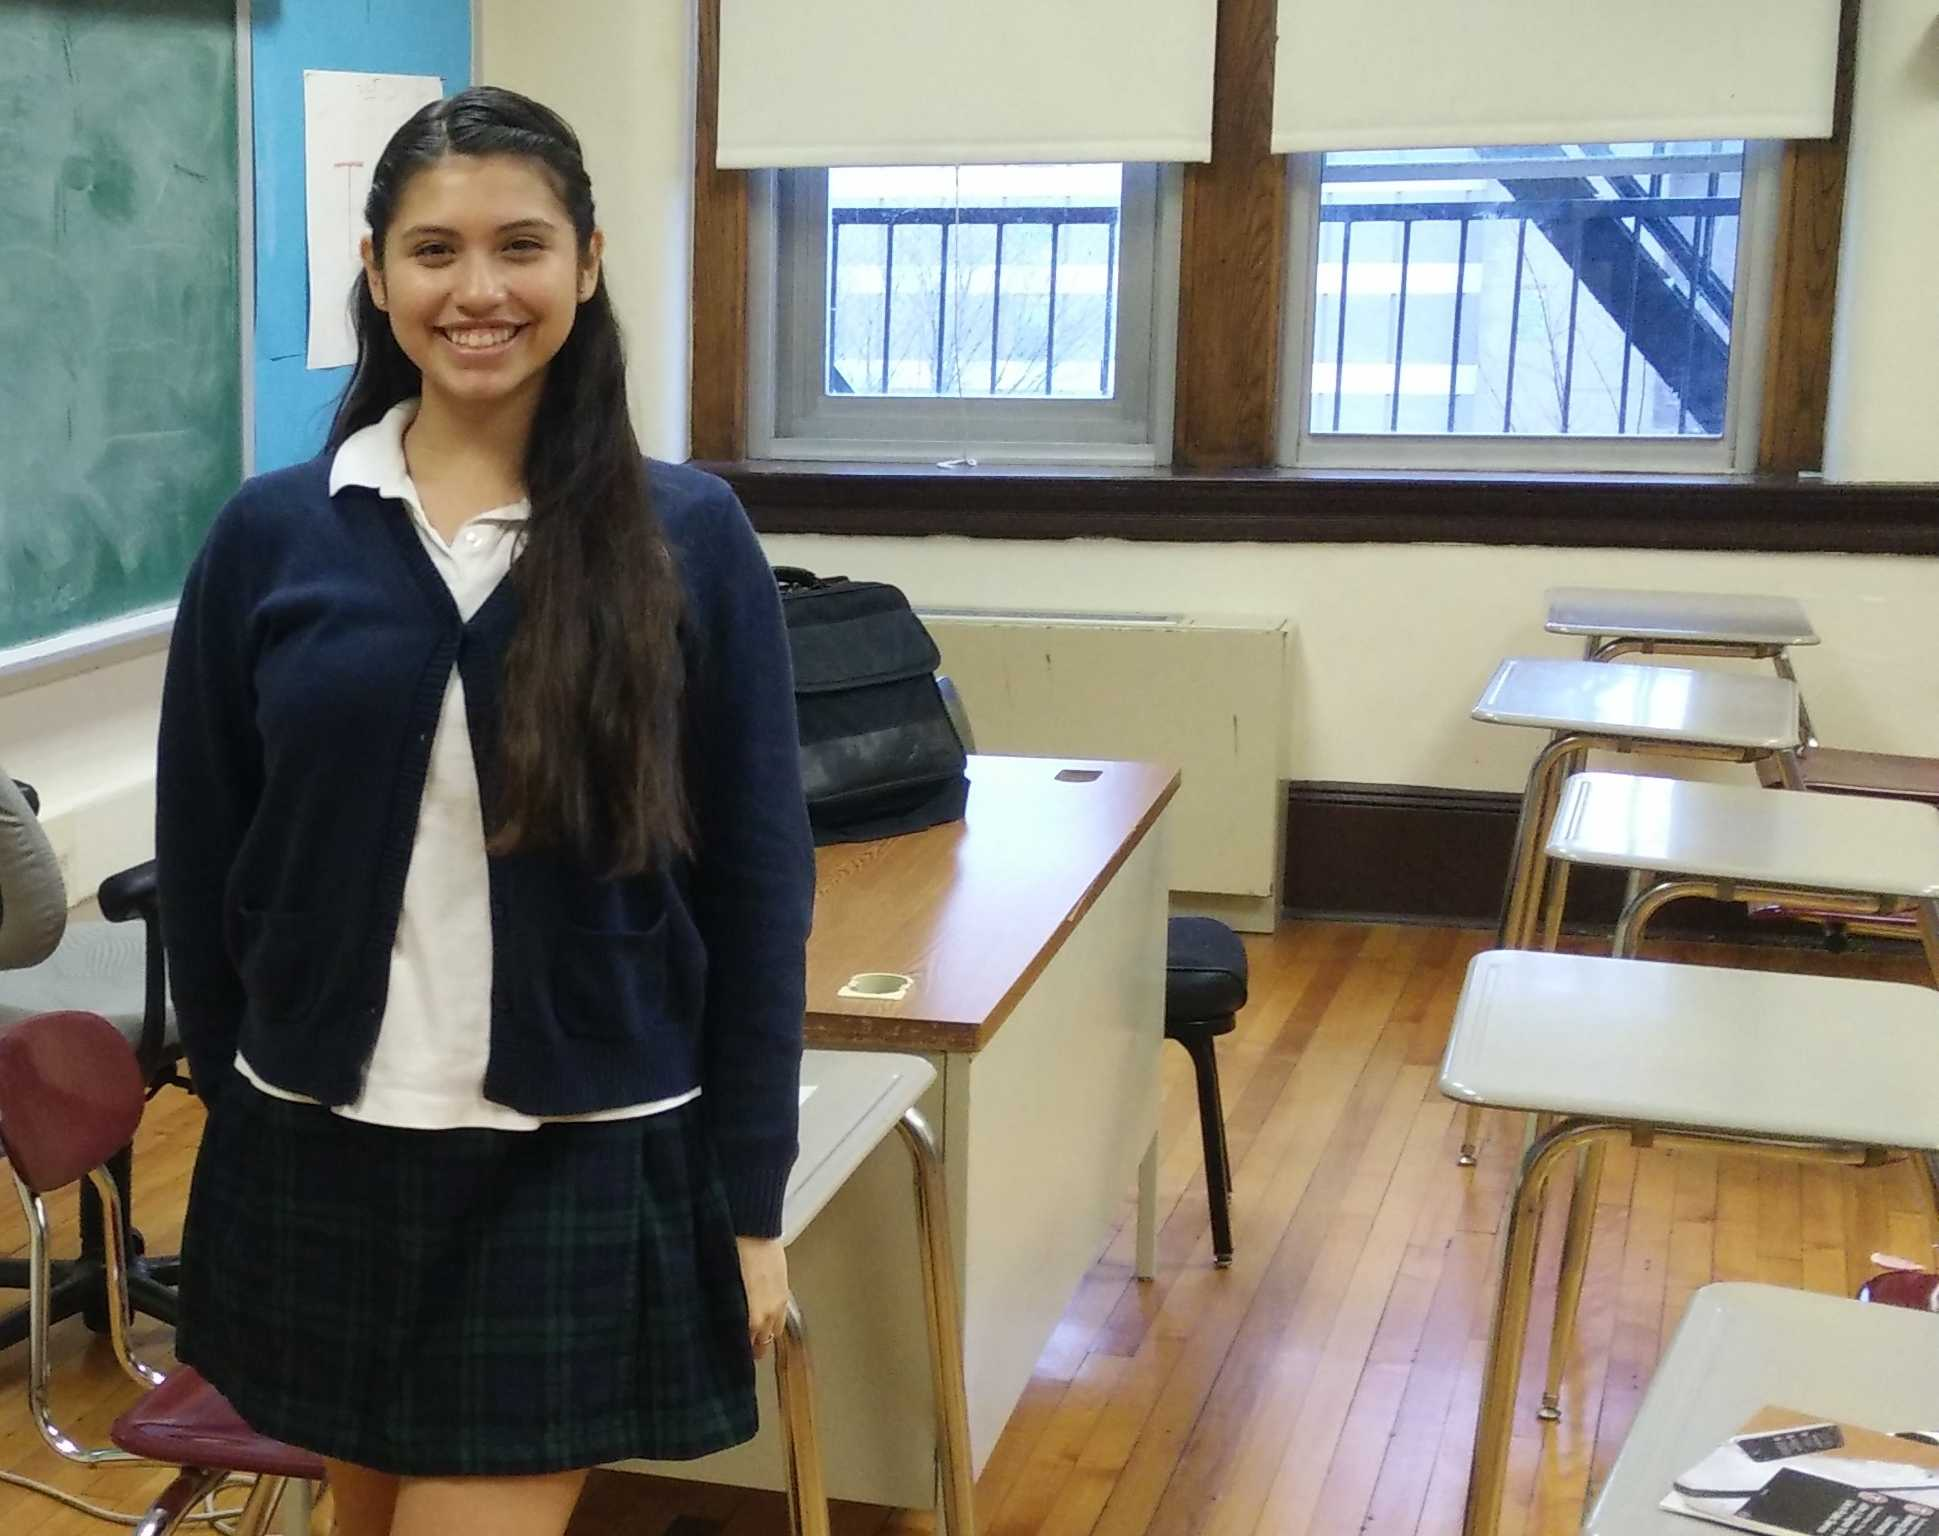 Sarai Roman is a junior at Benedictine Academy in Elizabeth, NJ.